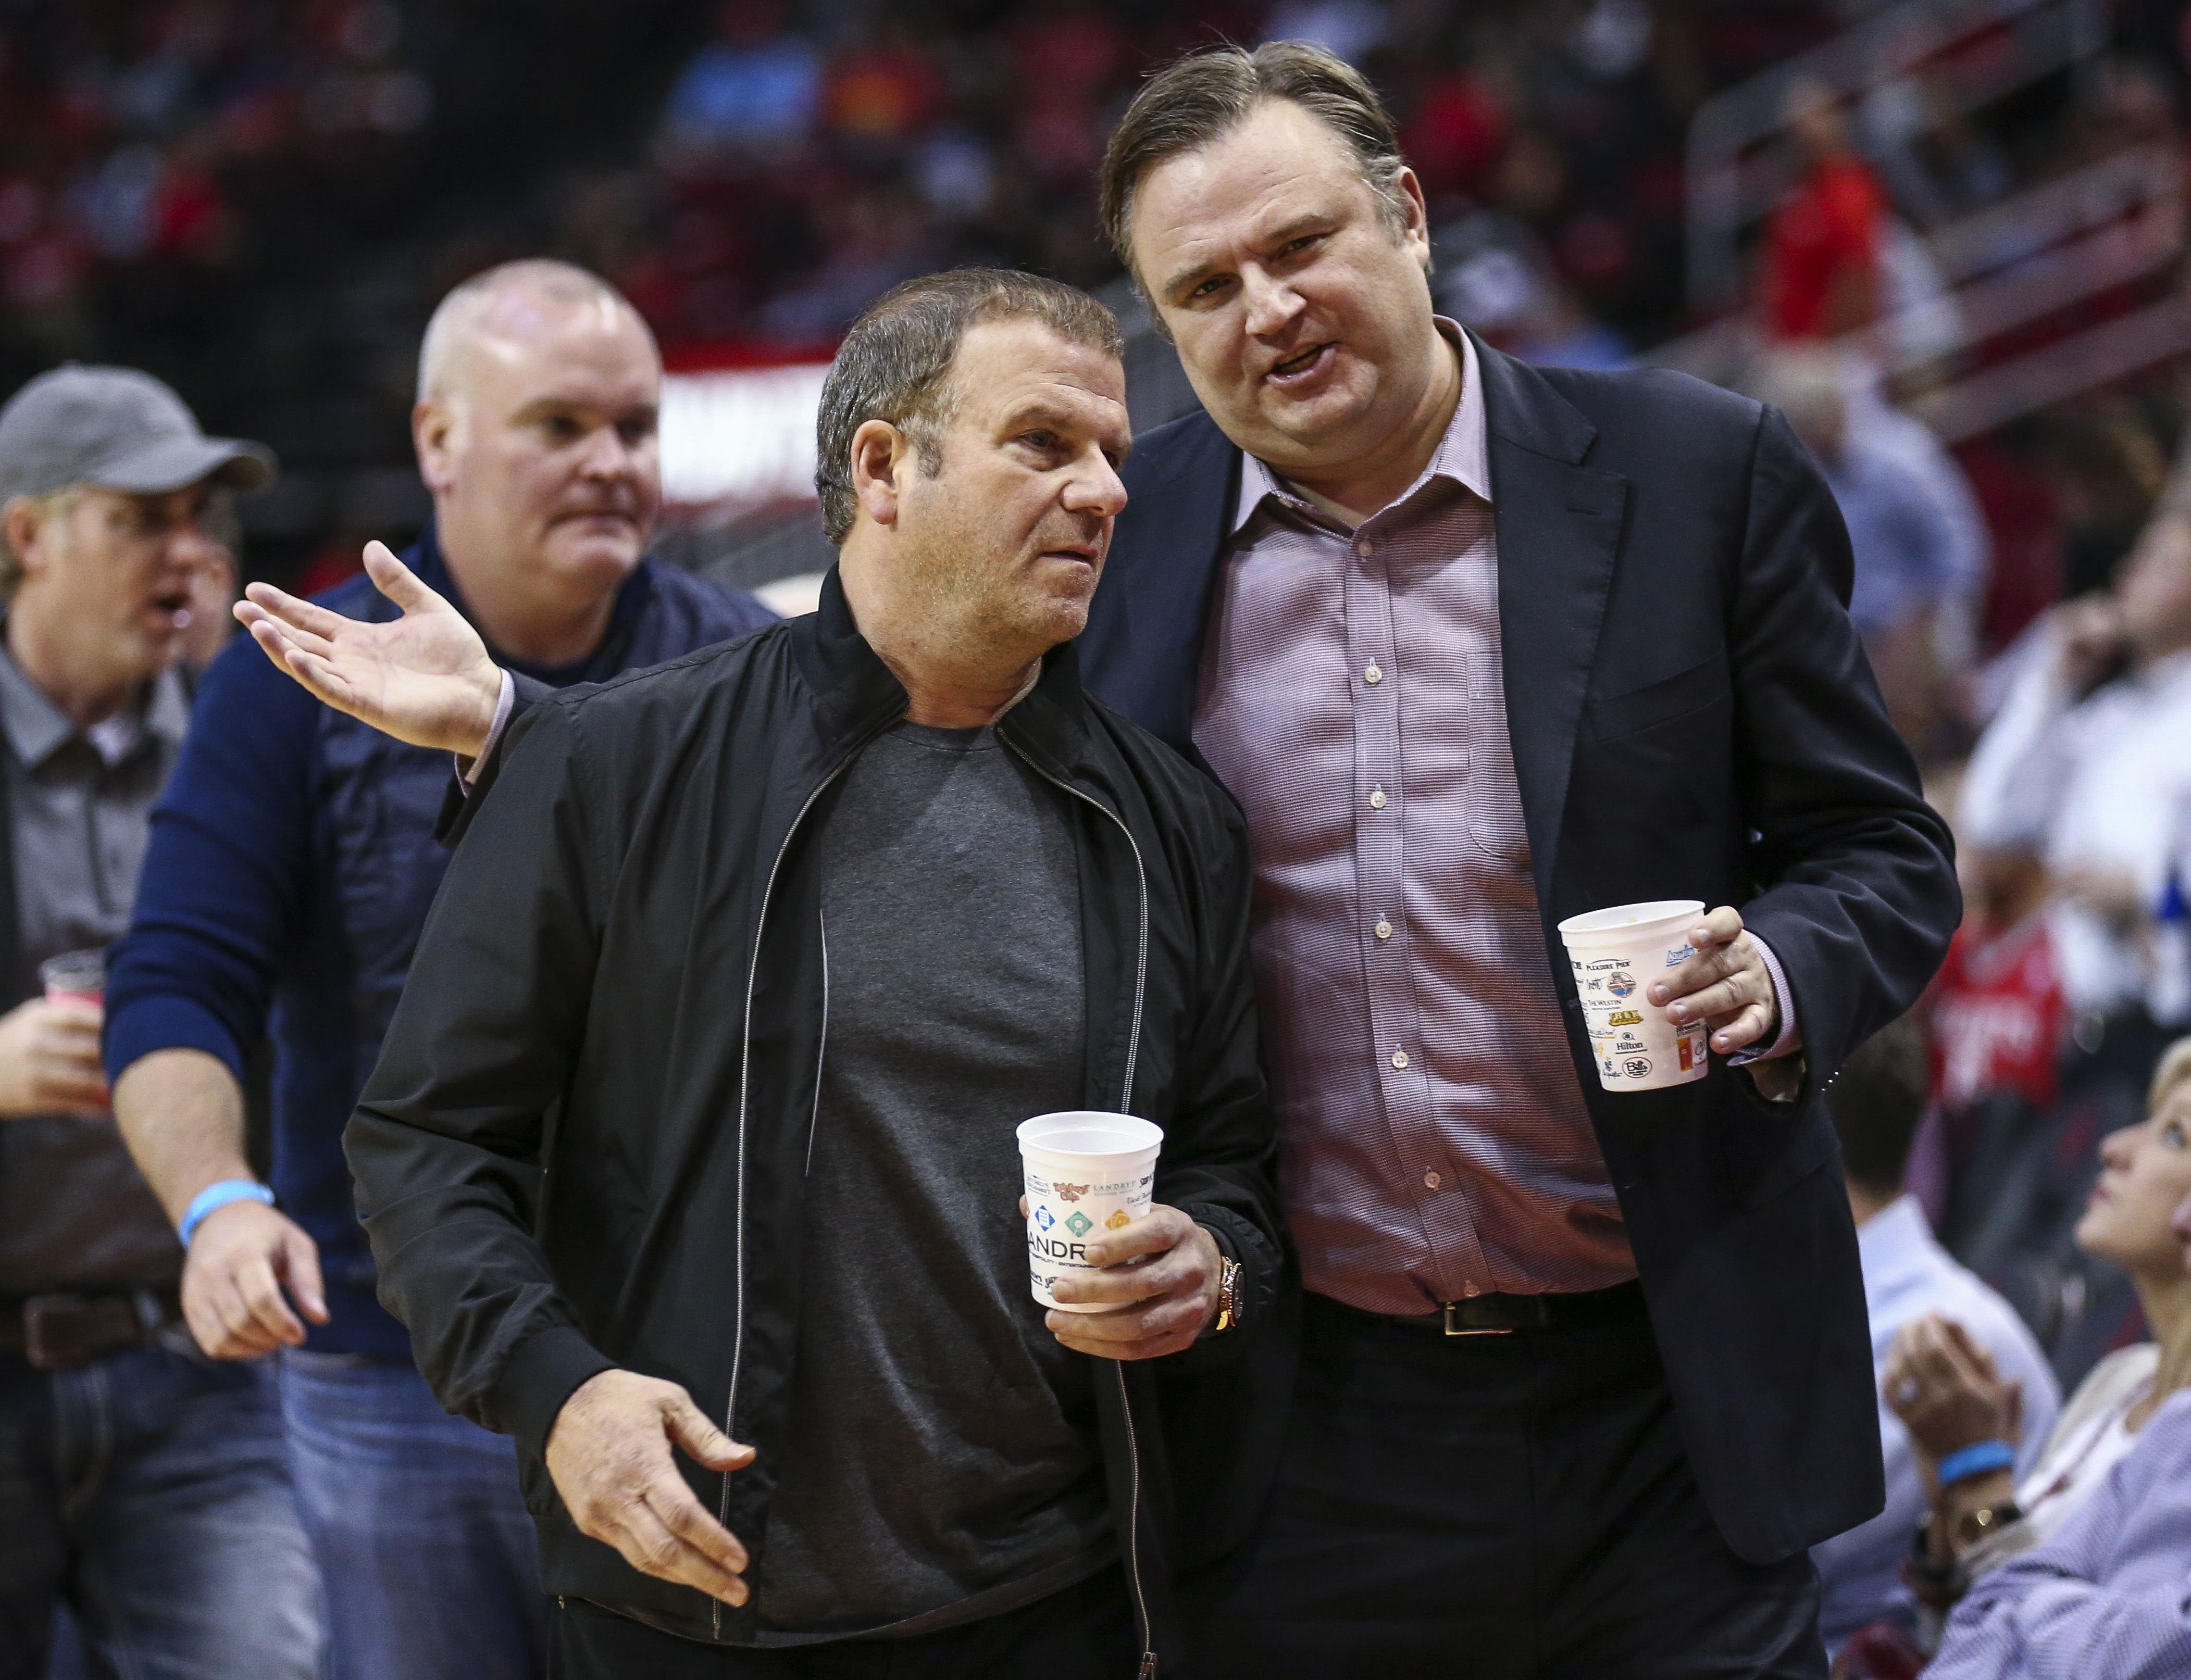 Rockets GM Daryl Morey sends funny tweet about team winning NBA title this year